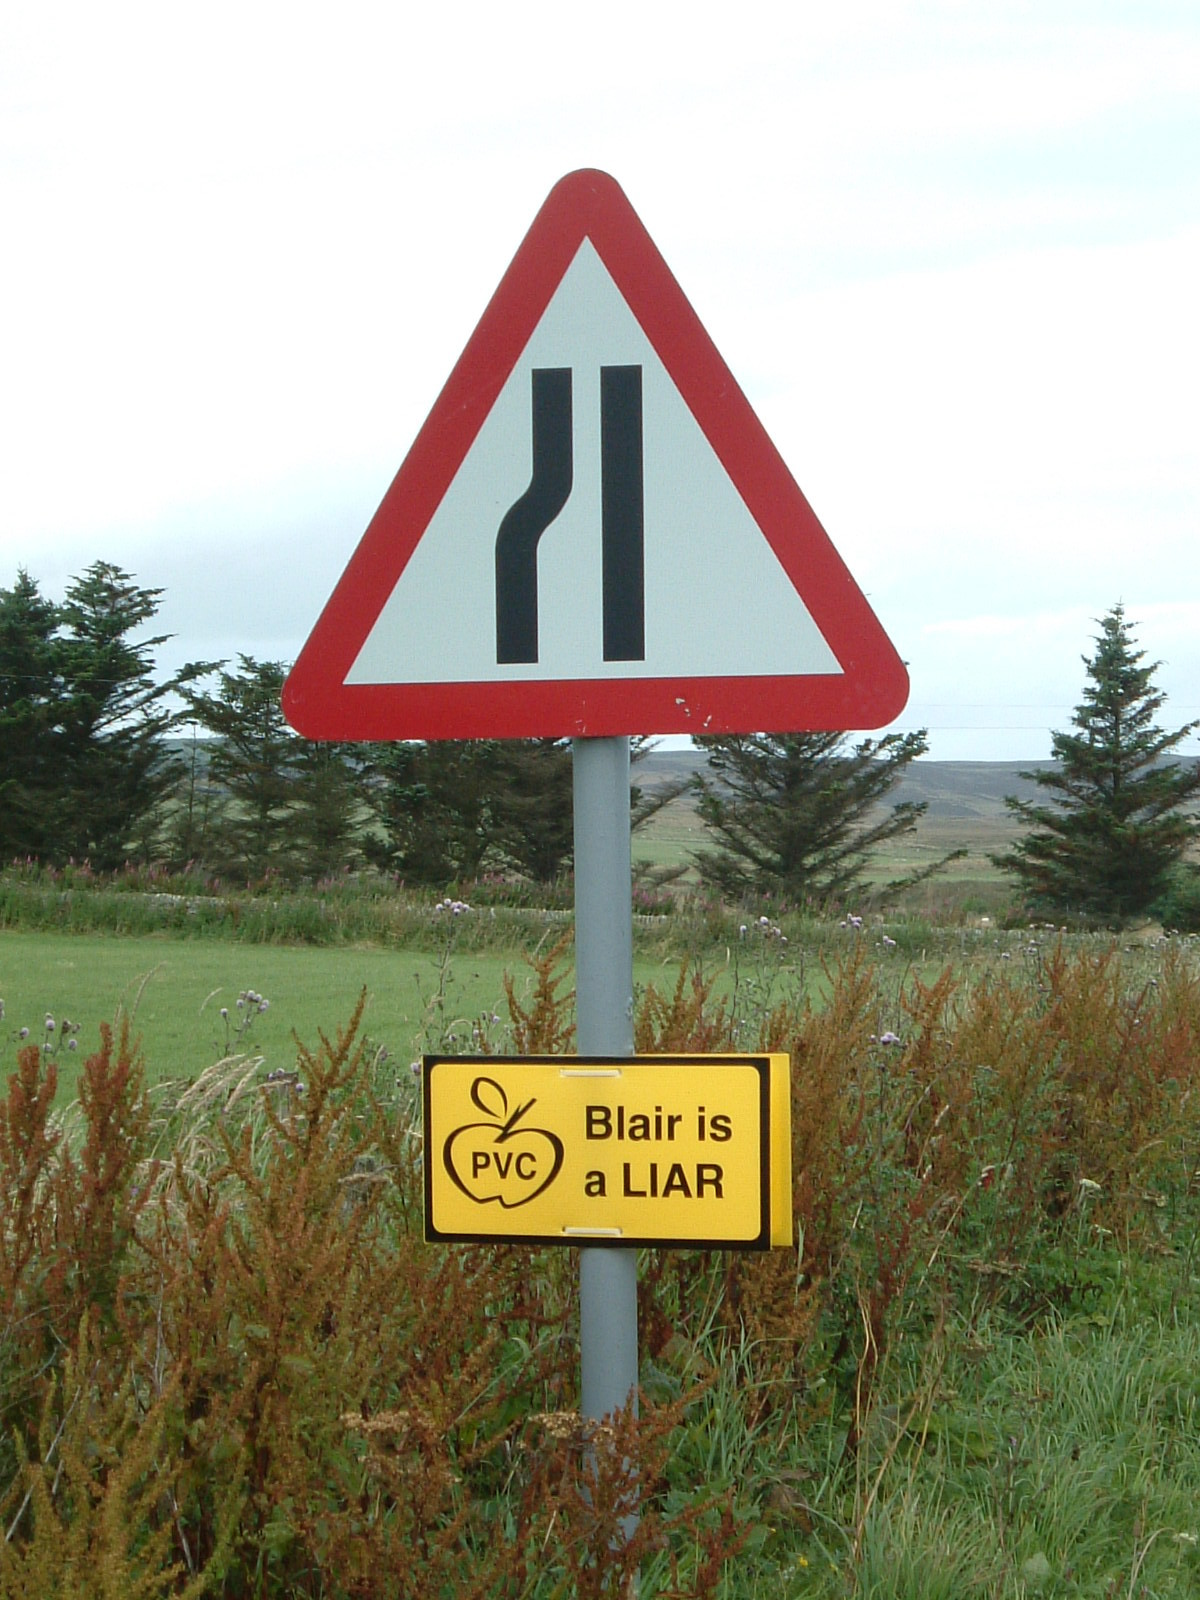 A sign saying 'Blair is a Liar'